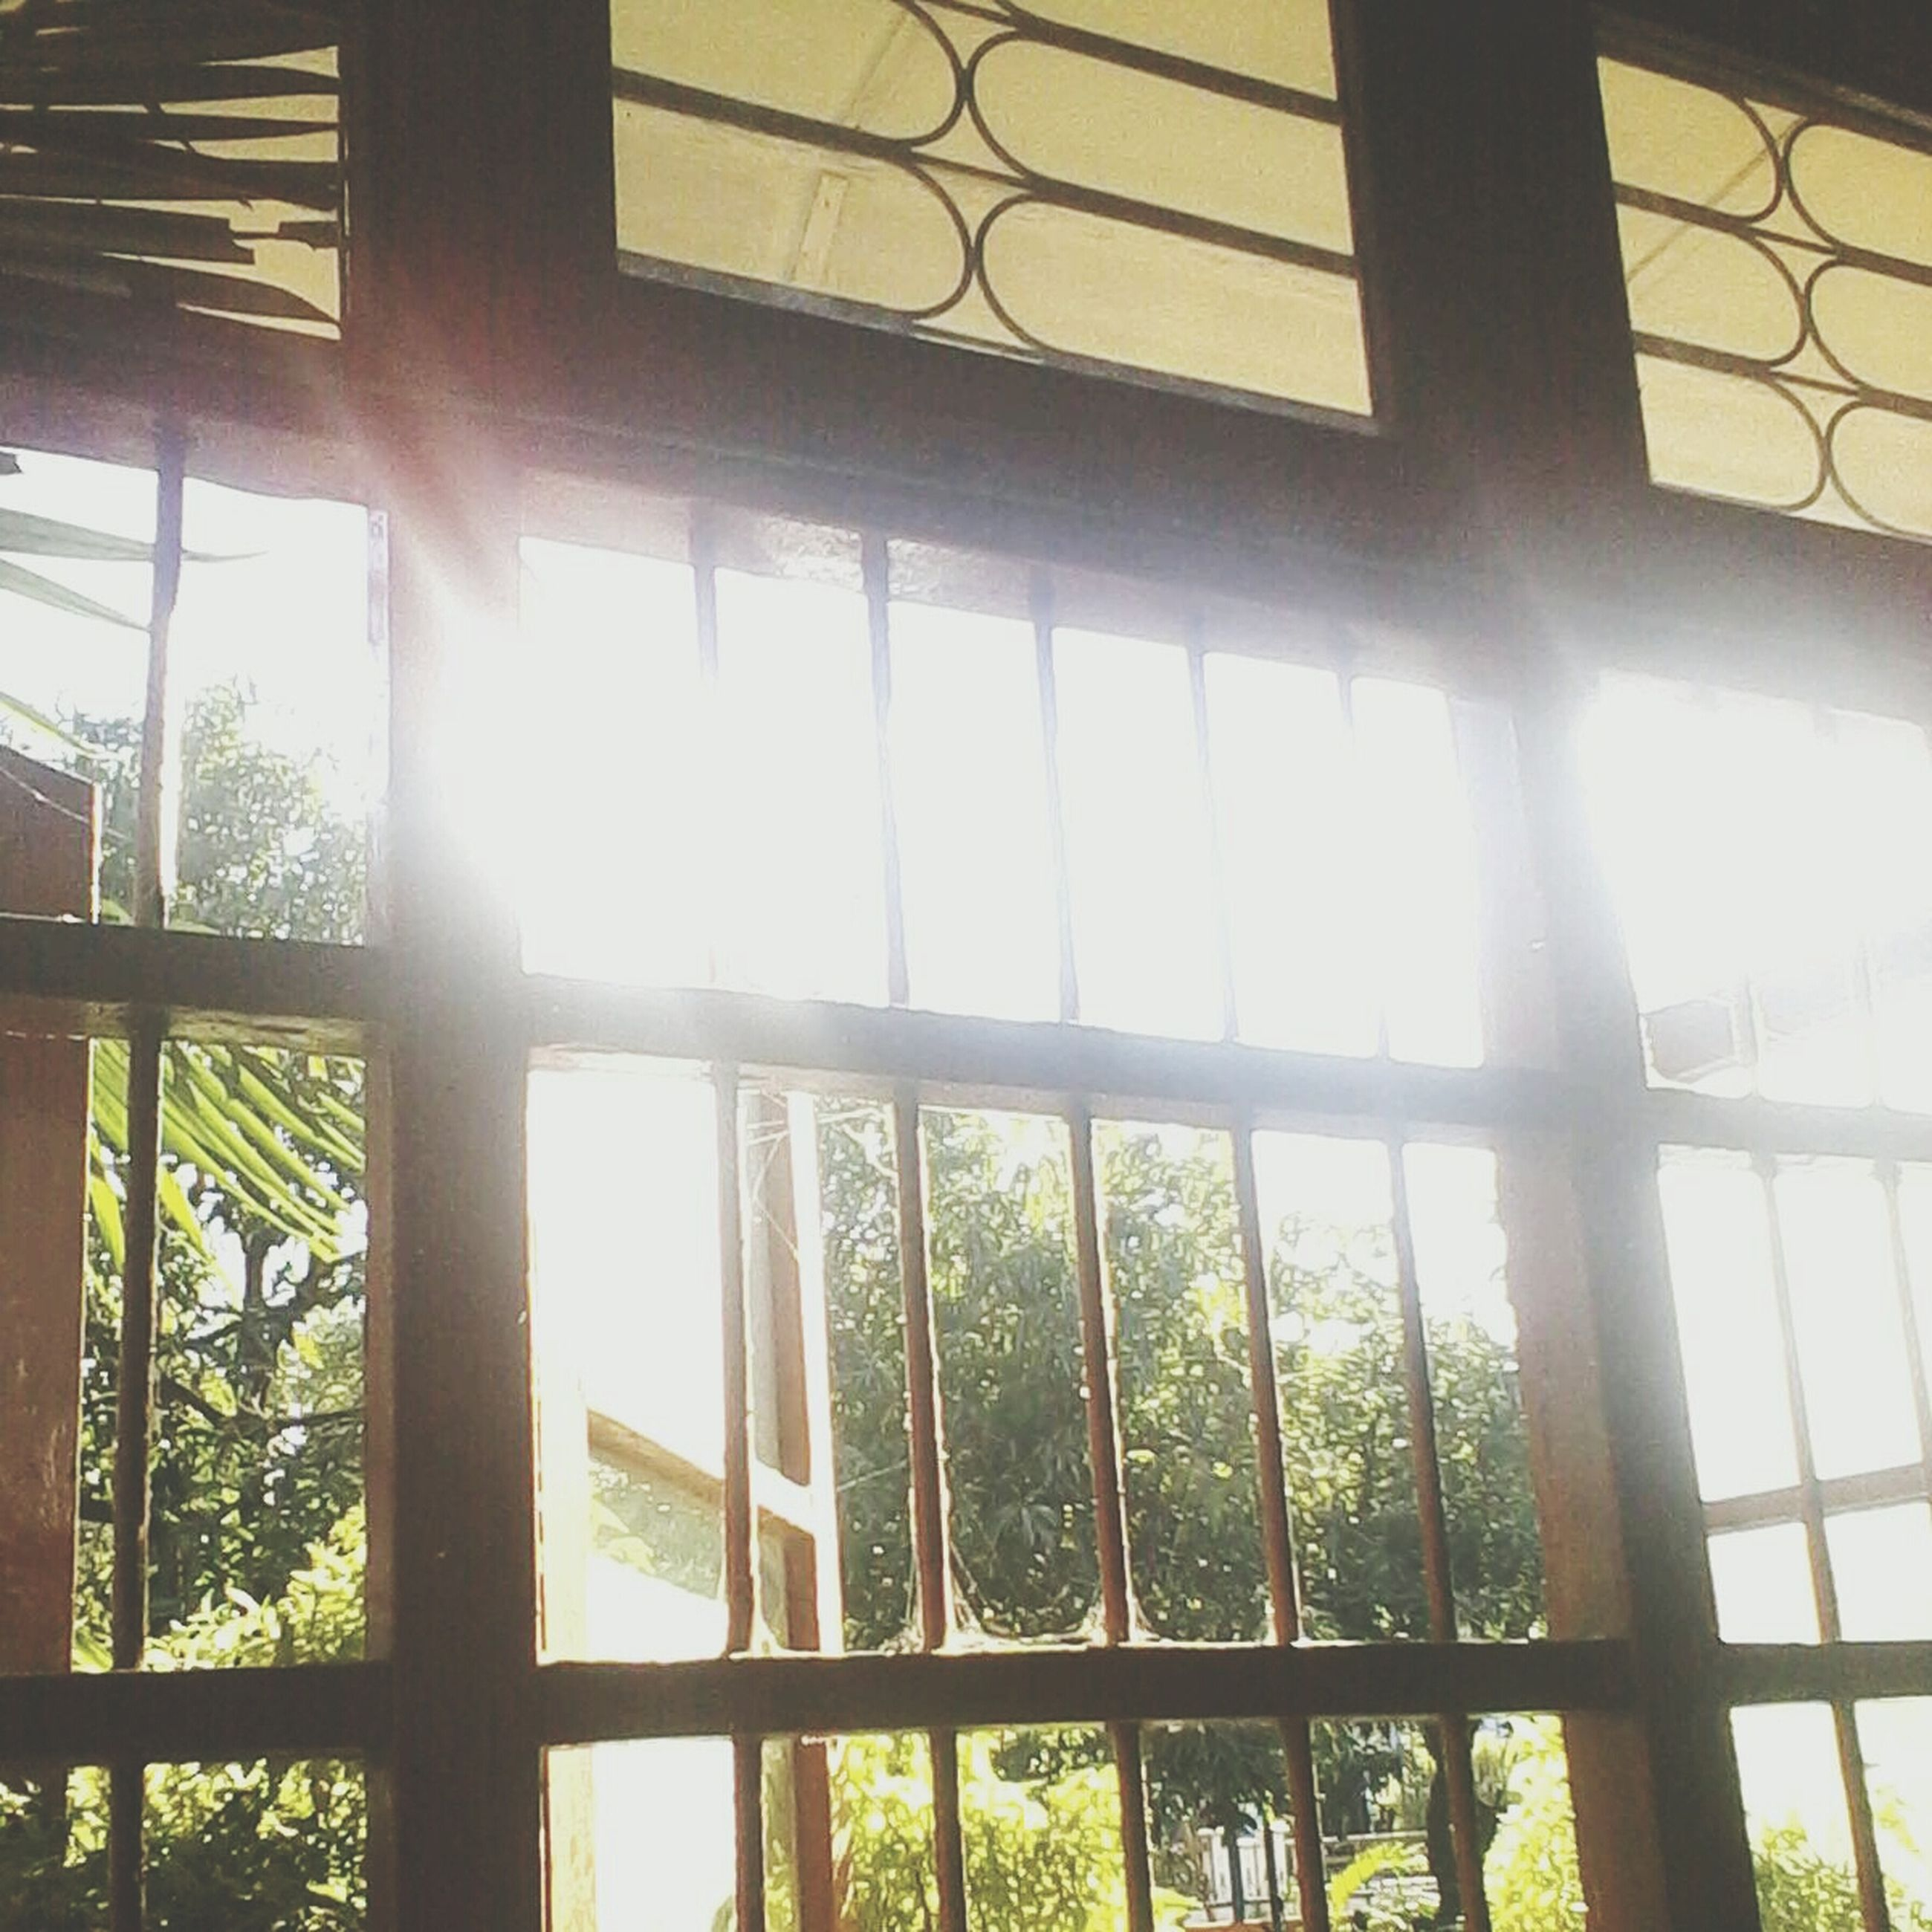 window, indoors, sunlight, sun, glass - material, fence, tree, sunbeam, transparent, day, railing, nature, no people, built structure, protection, pattern, growth, lens flare, safety, plant